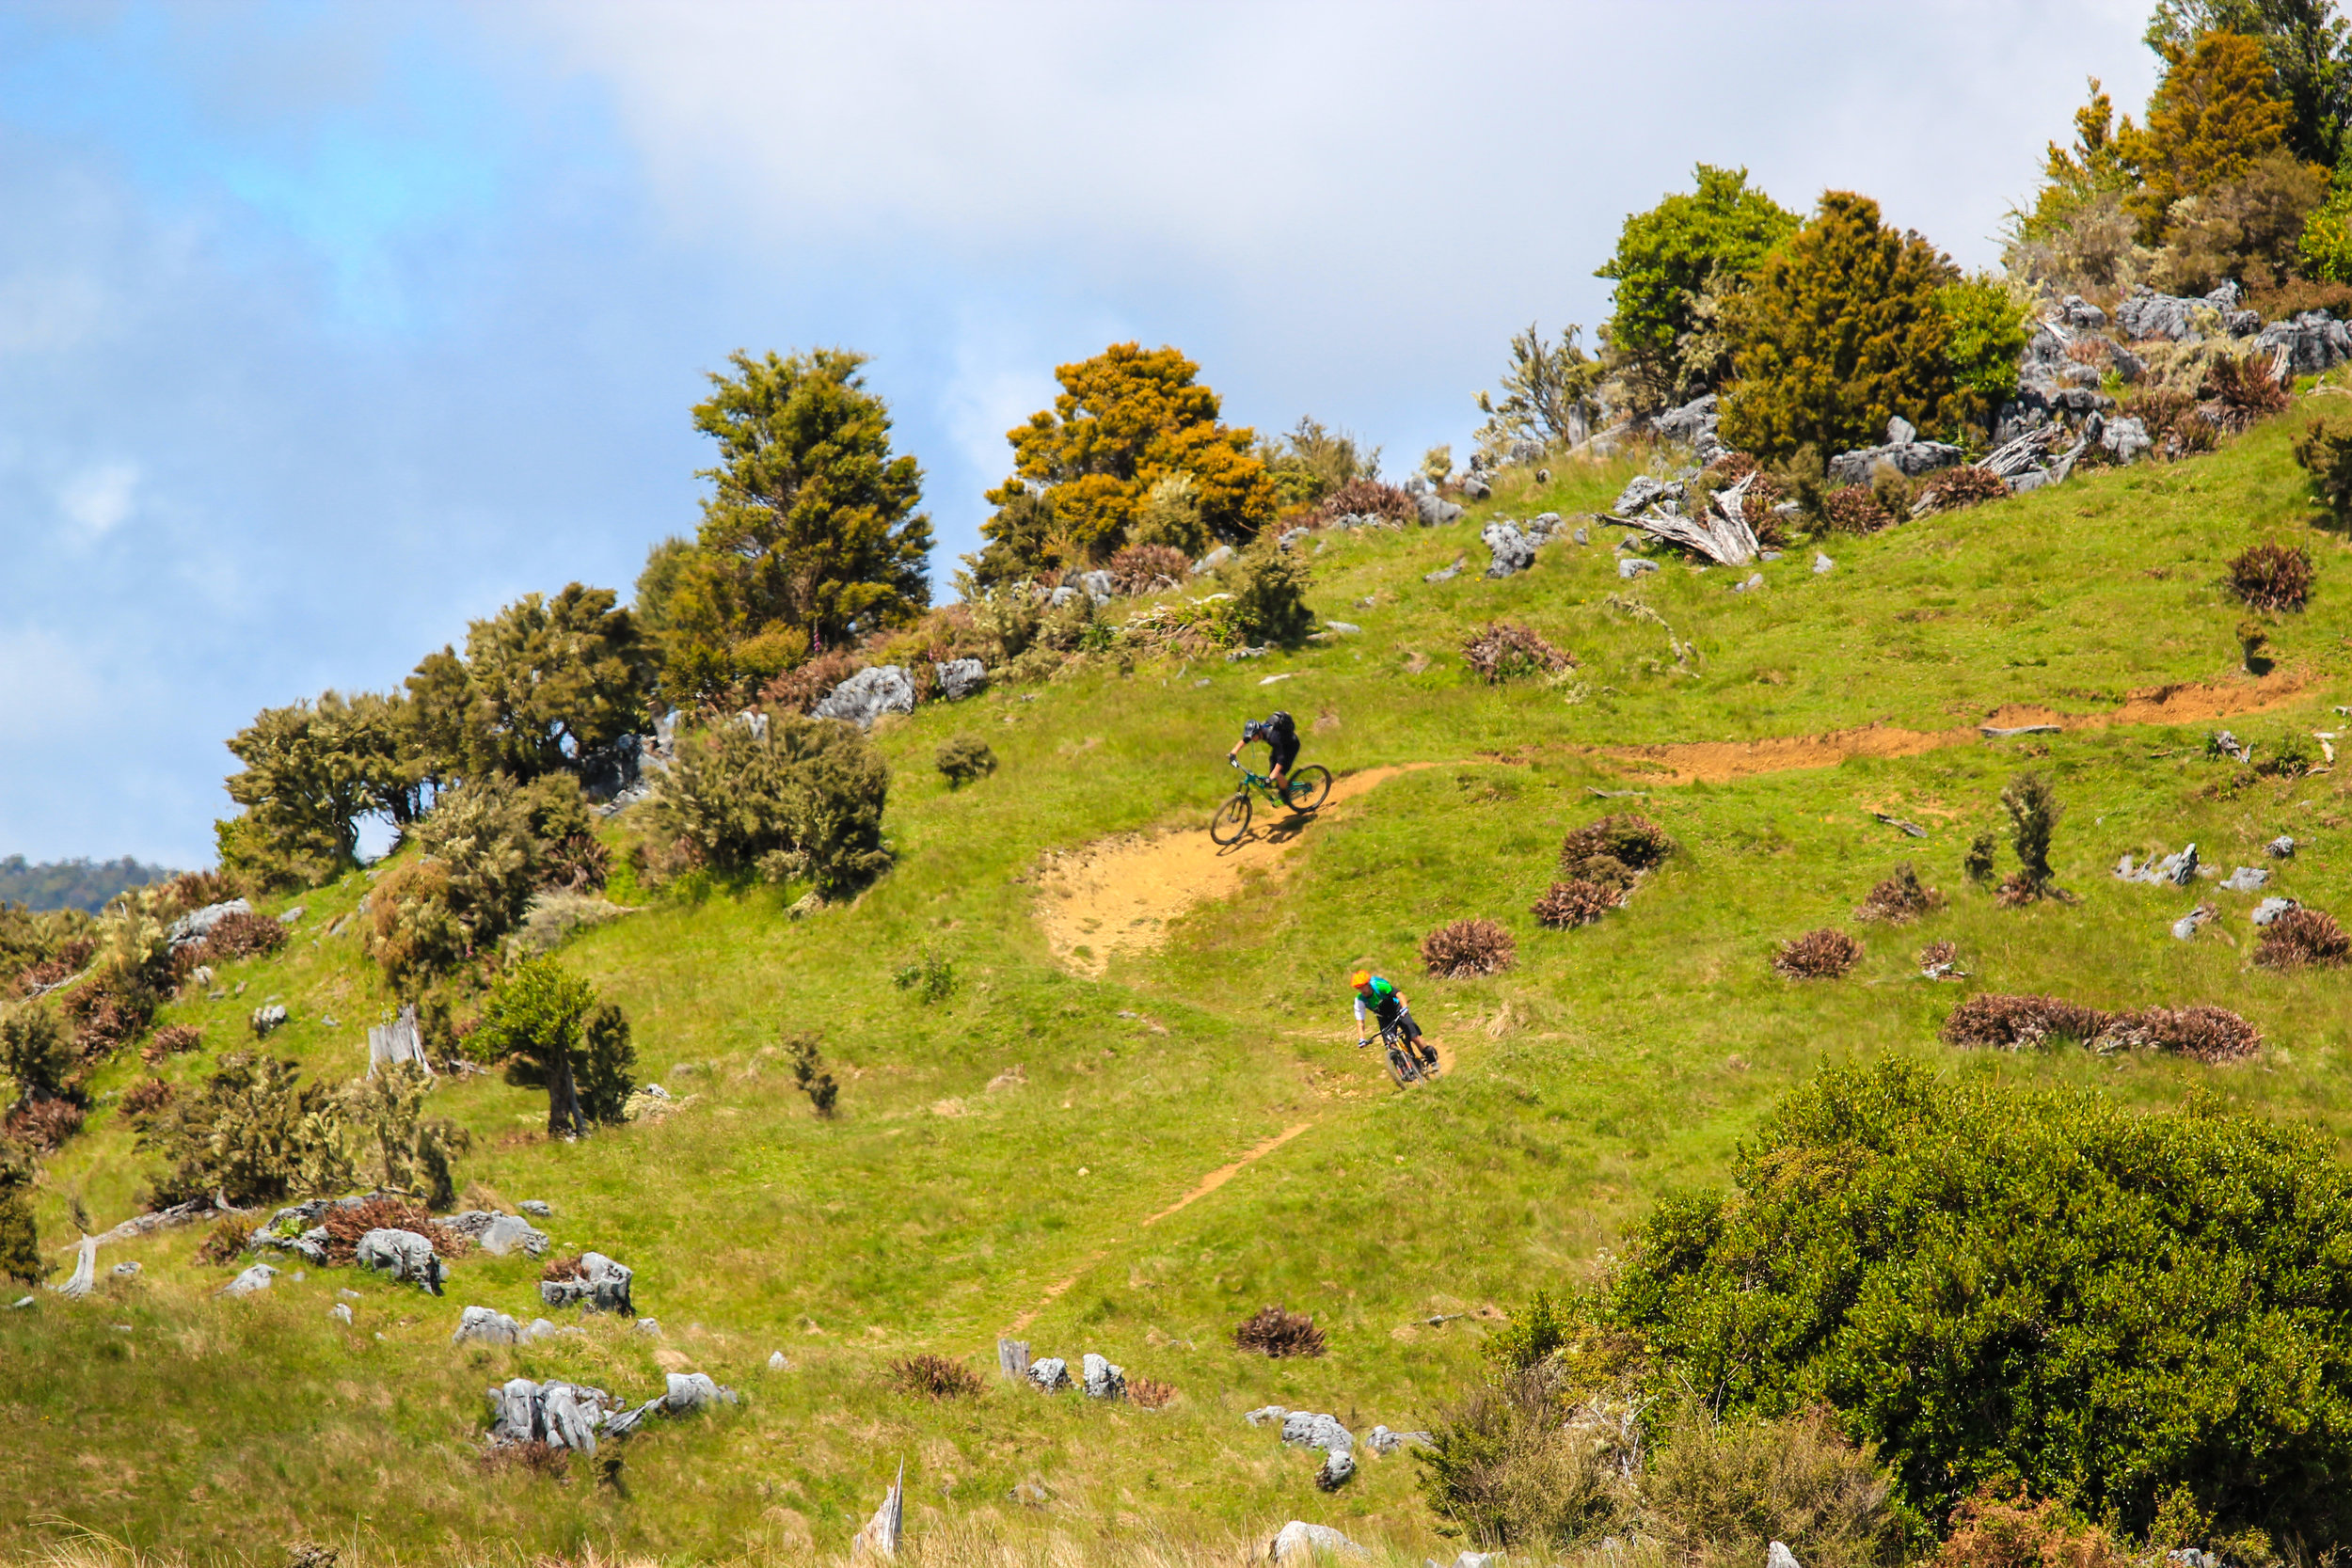 This is one of the few trails in the Abel Tasman National Park